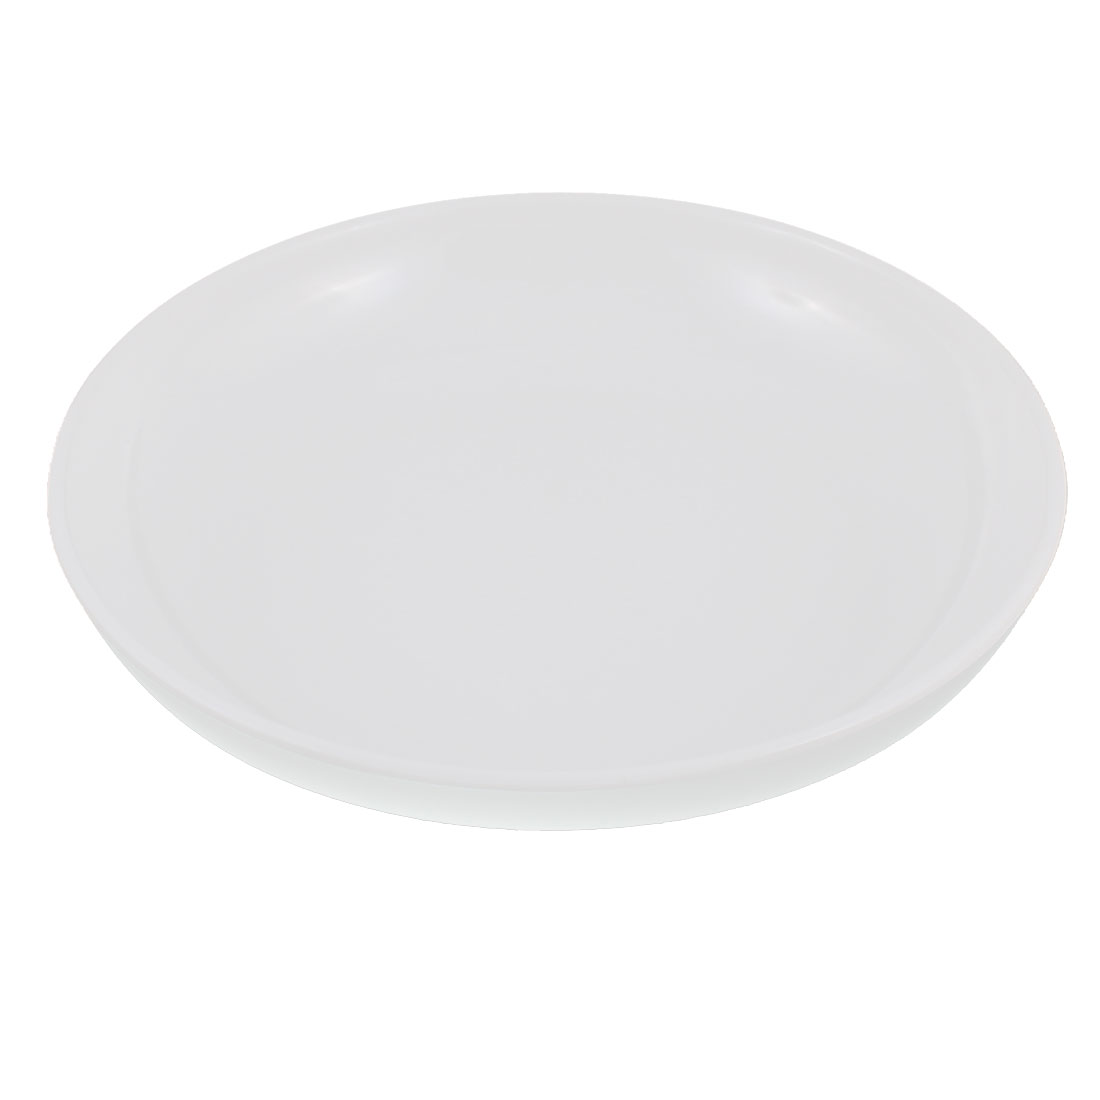 "Dinnerware Round Shape Dinner Dish Serving Plate White 8"" Dia"